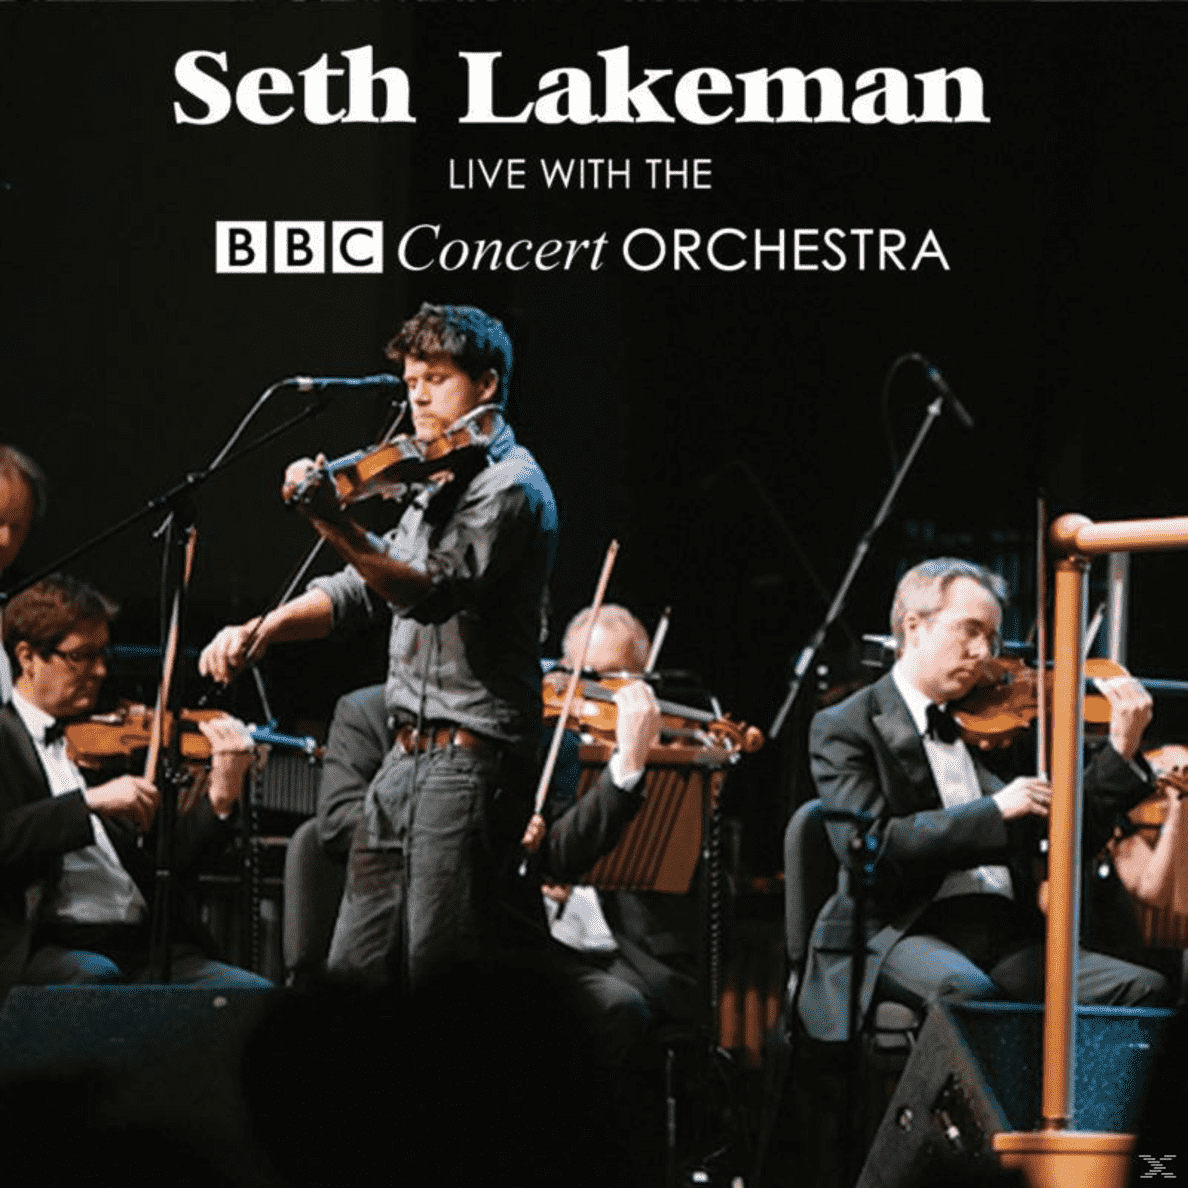 Live With The Bbc Concert Orchestra Seth Lakeman auf CD